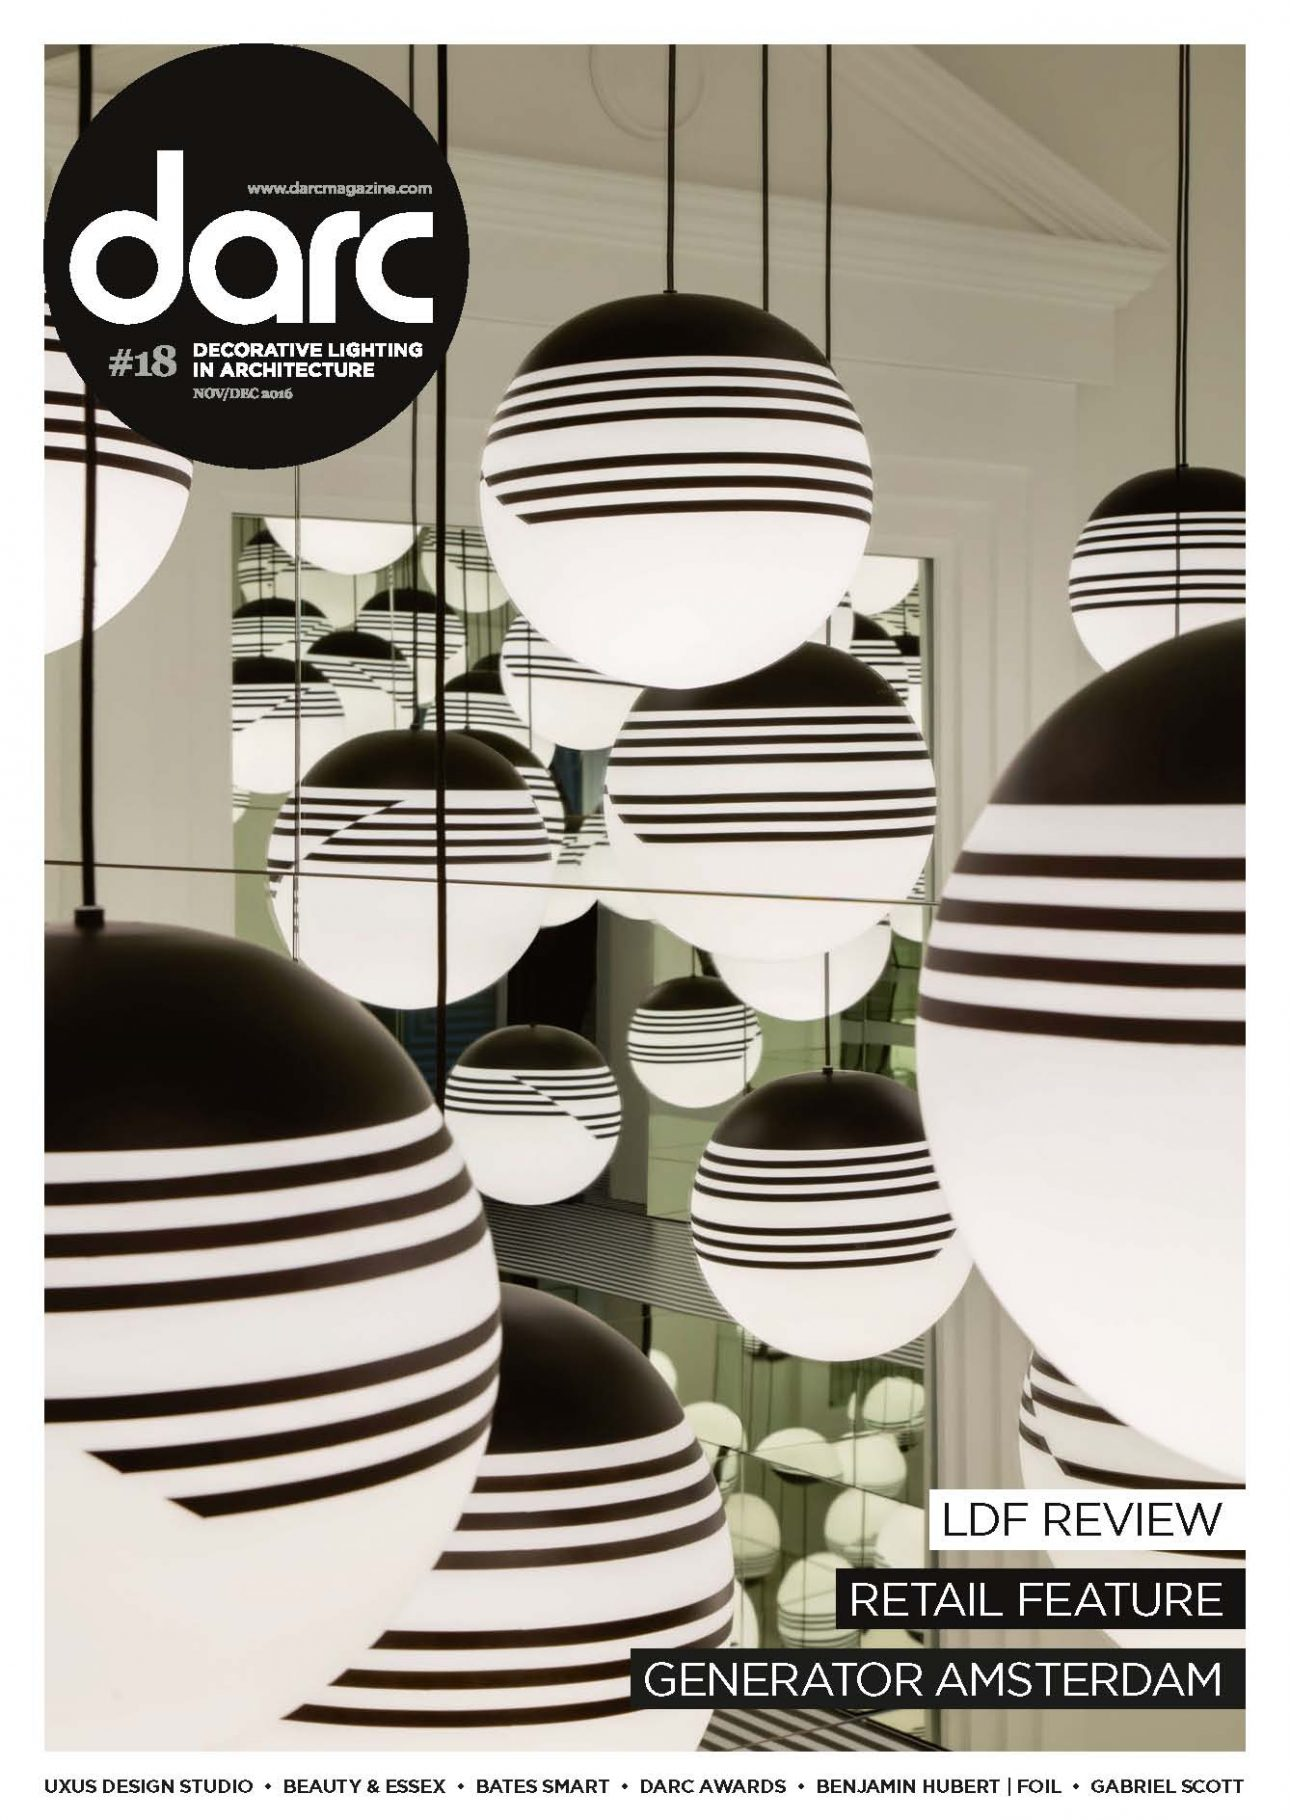 Cover of the darc magazine.